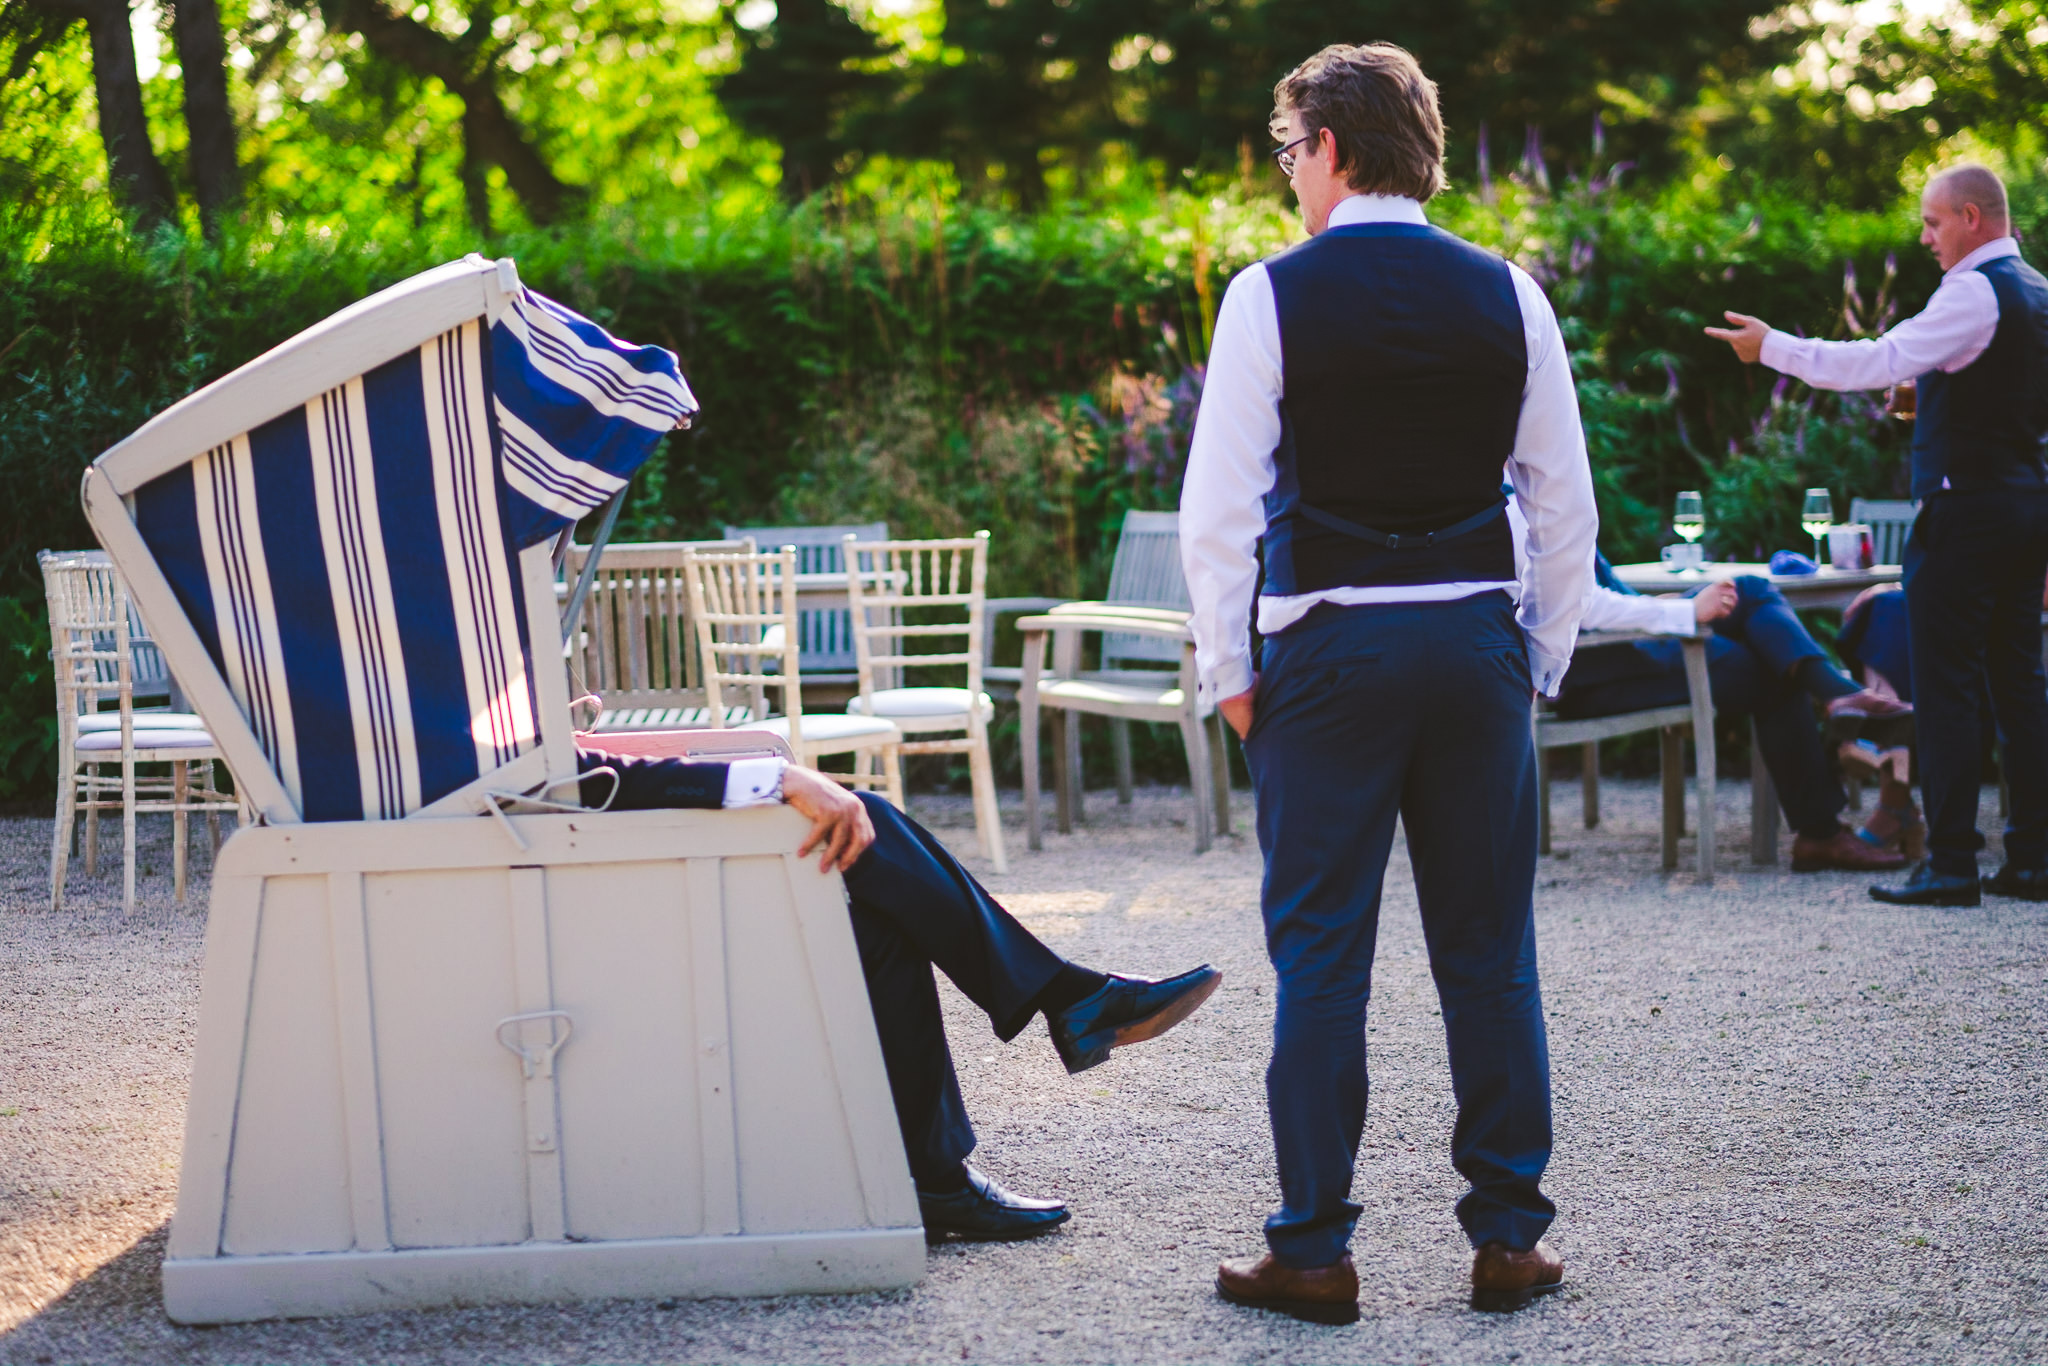 The groom chats to a guest who is sitting in a fabric covered chair